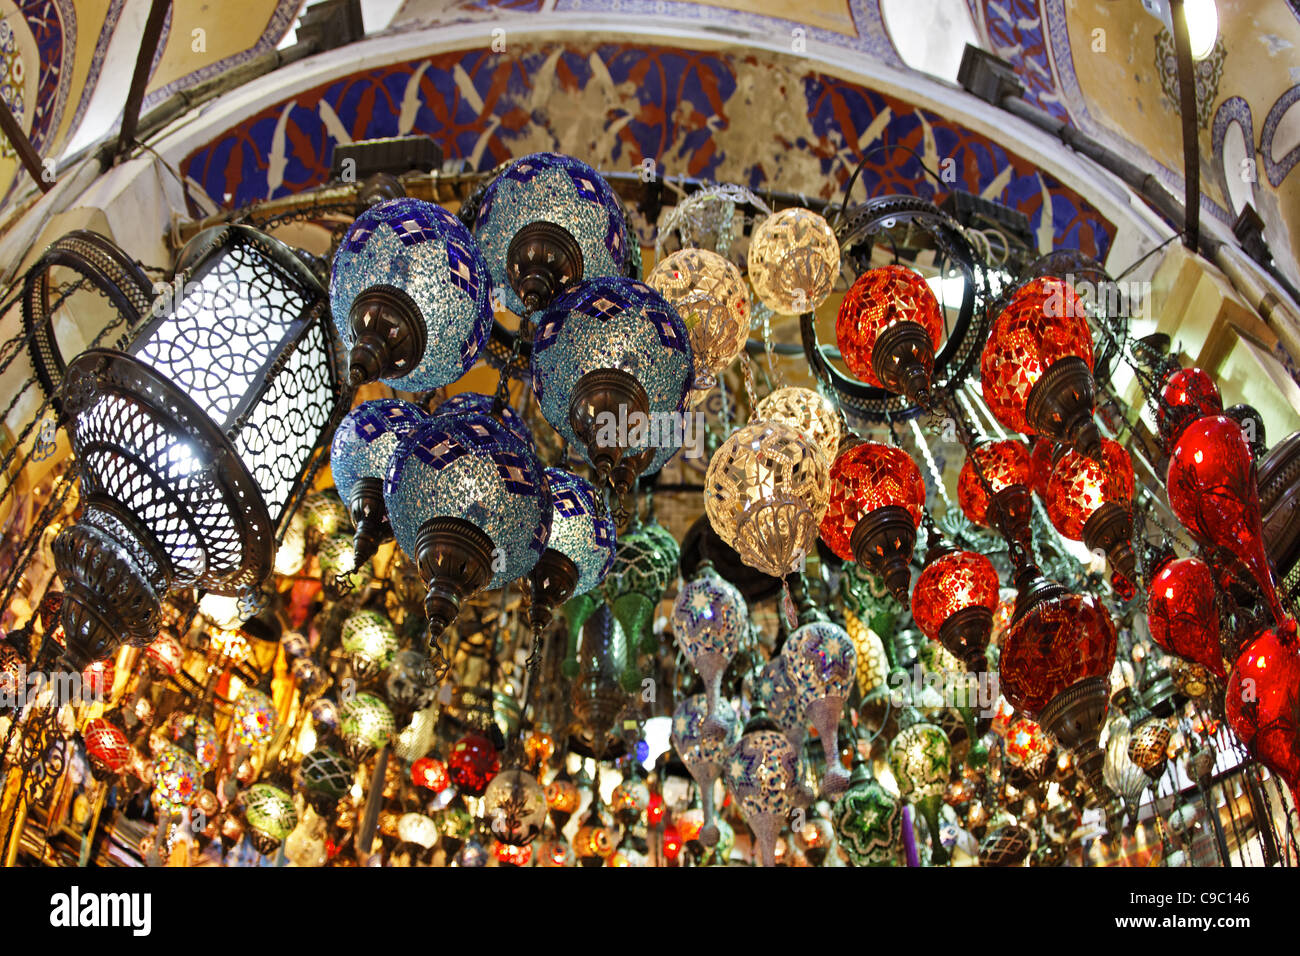 Lampes turc, Grand Bazar marché , Istanbul, Turquie , l'Europe, Photo Stock